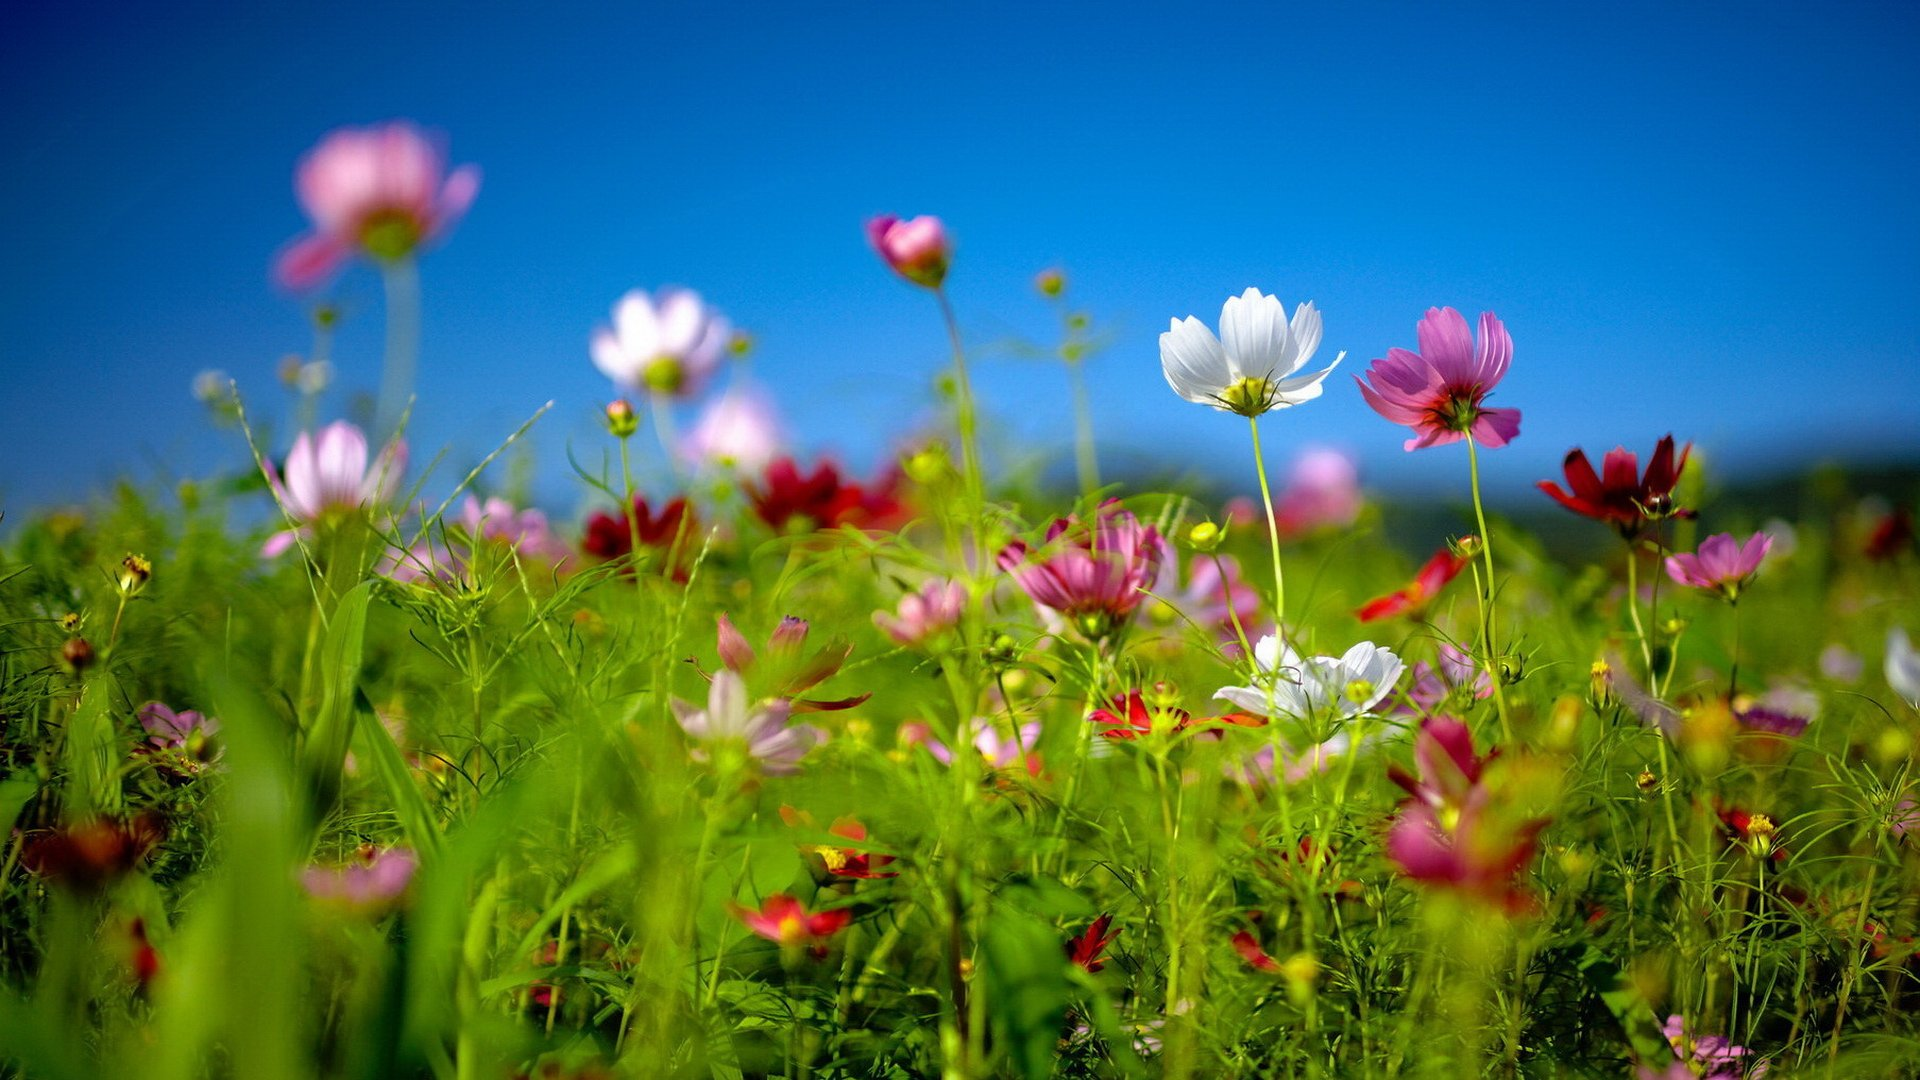 Spring wildflowers Best HD Windows 81 Theme 1920x1080